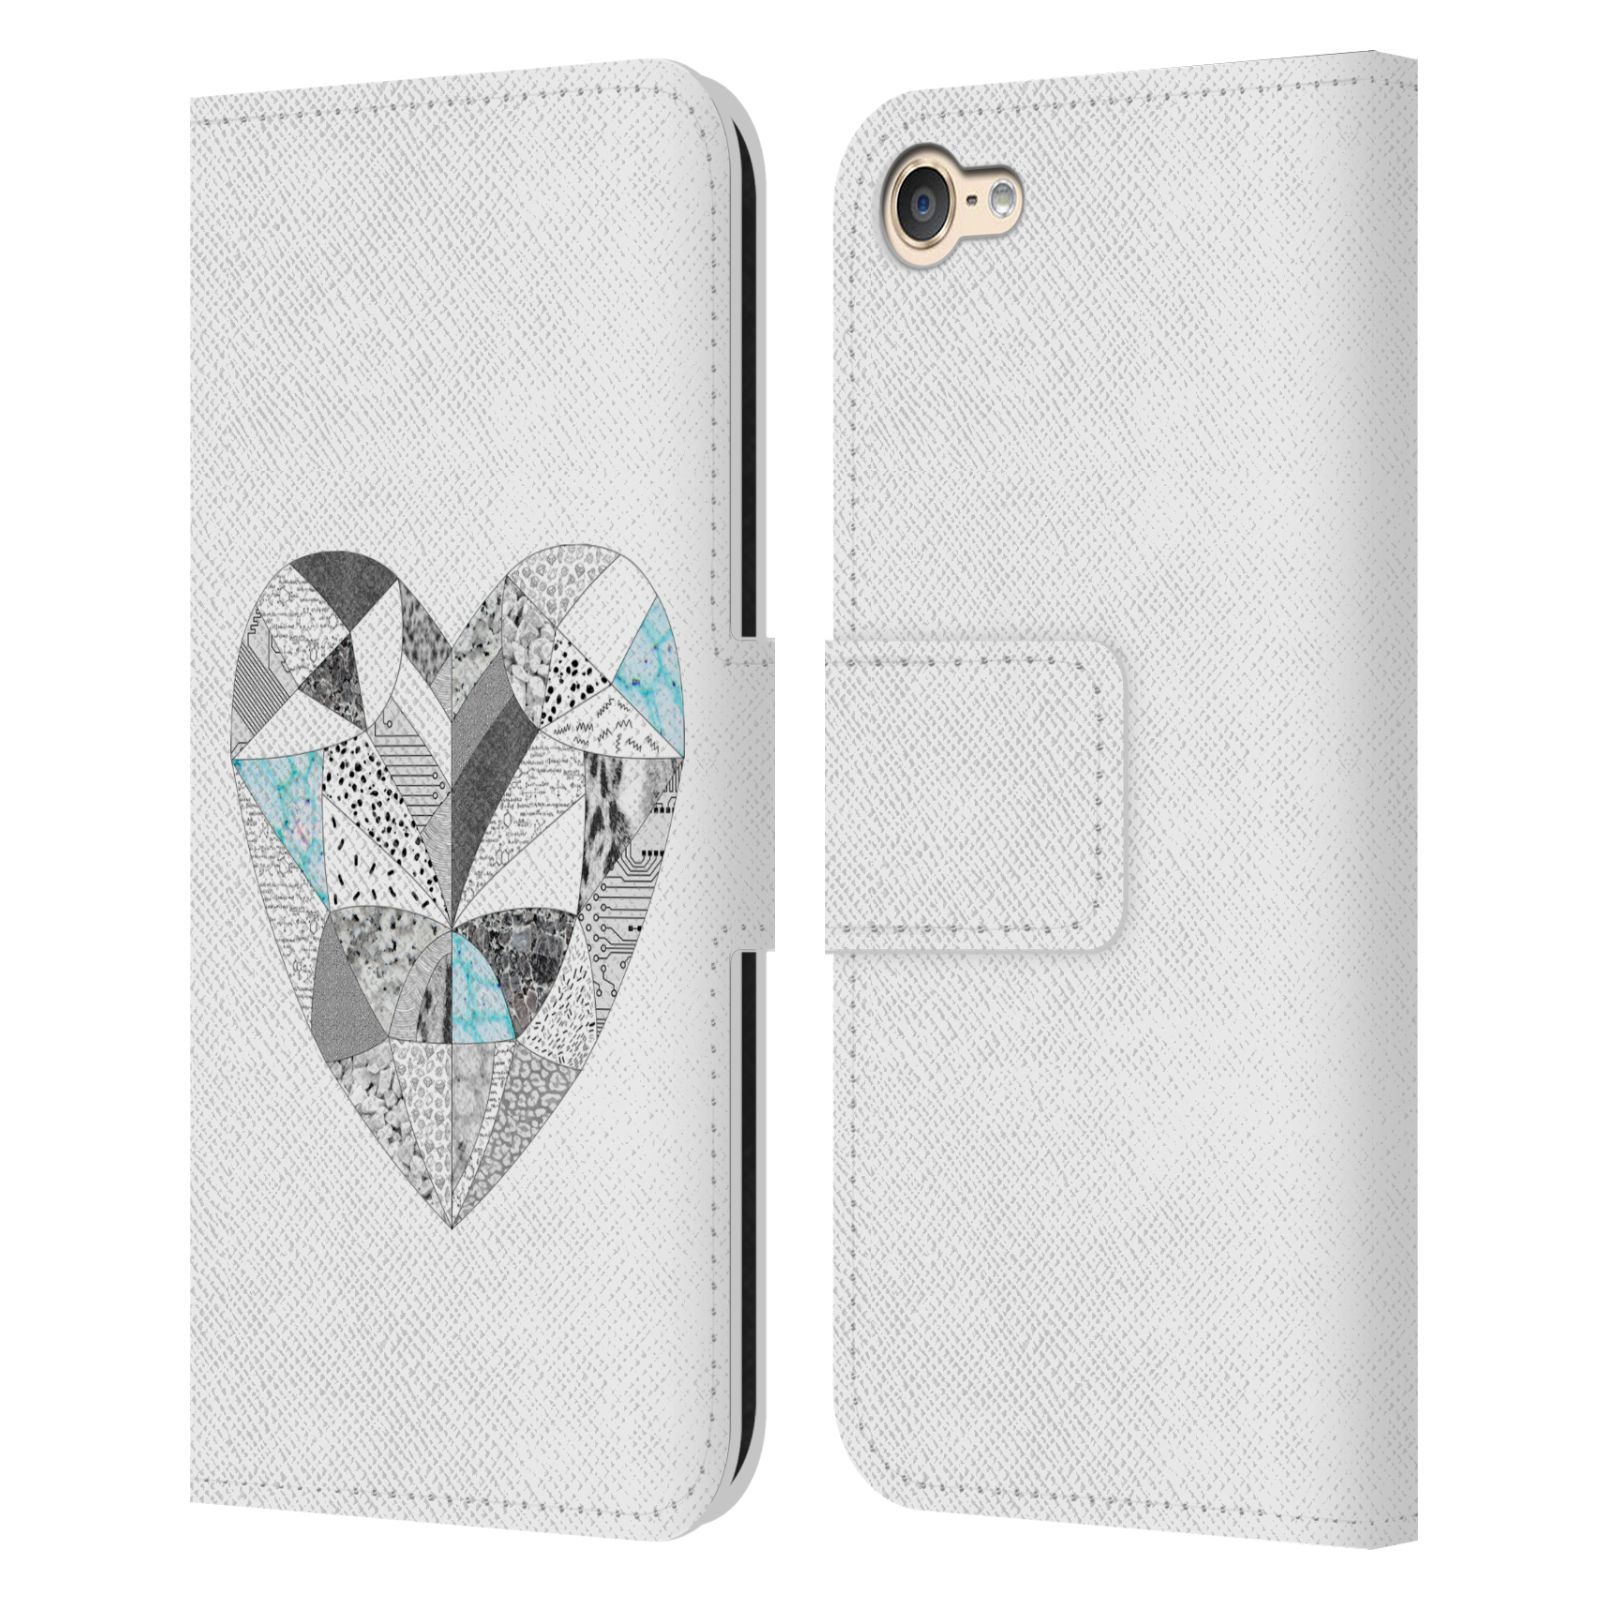 OFFICIAL-VASARE-NAR-ILLUSTRATION-2-LEATHER-BOOK-CASE-FOR-APPLE-iPOD-TOUCH-MP3